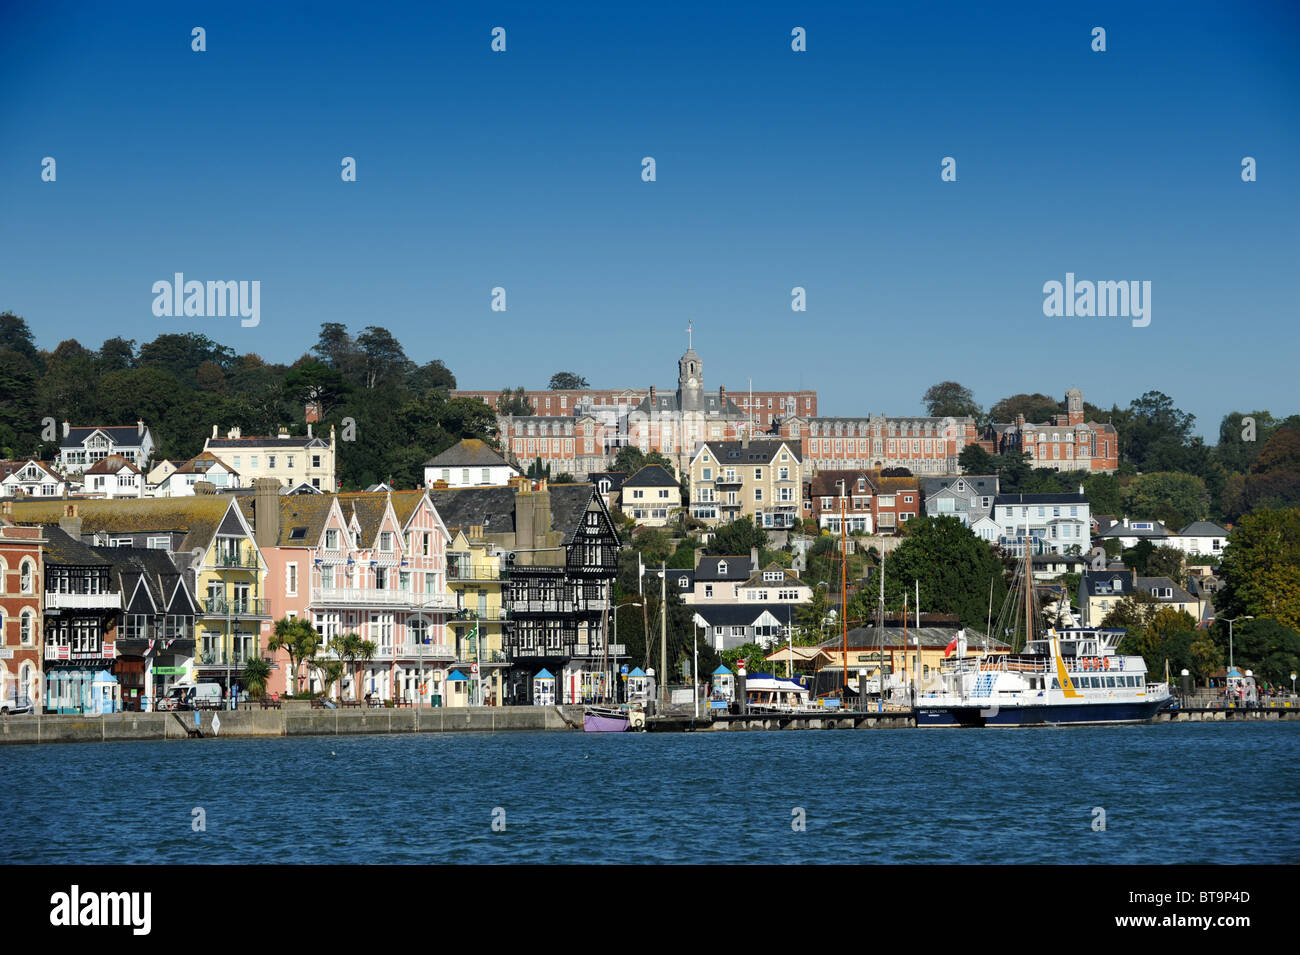 Dartmouth Devon Uk with Naval College at top Stock Photo